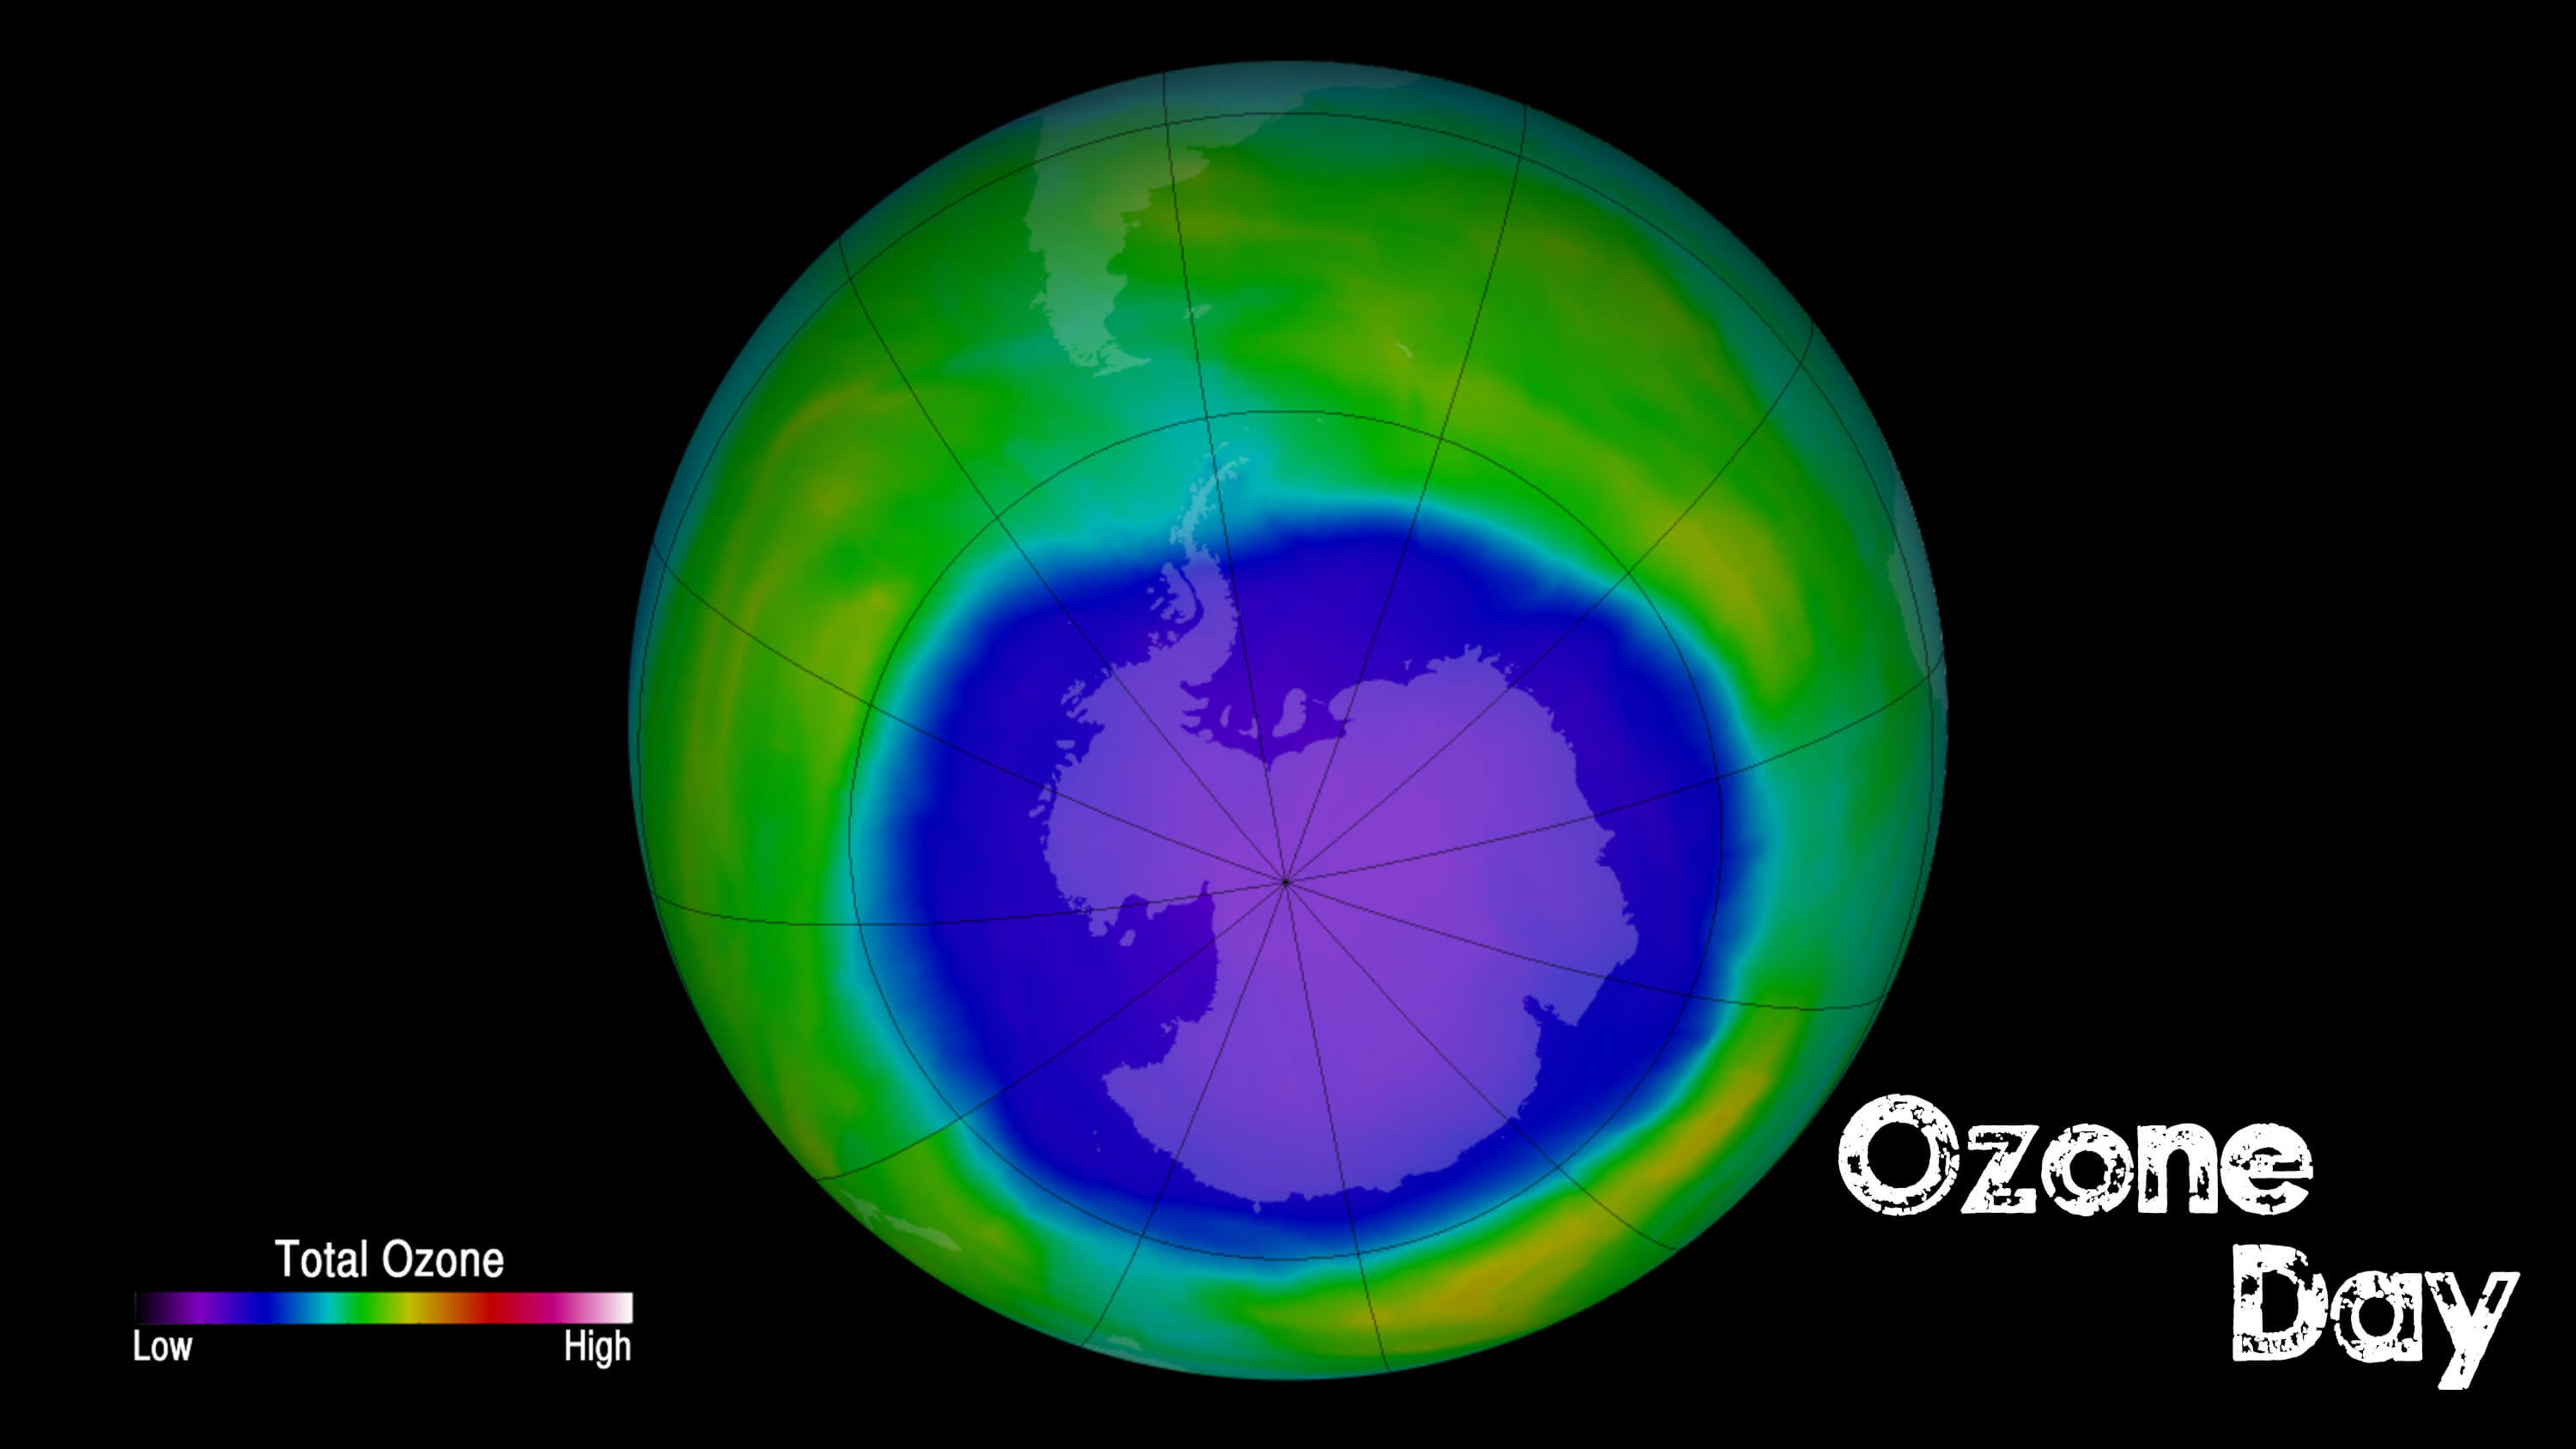 ozone day layer protection awareness save earth atmosphere picture wallpaper